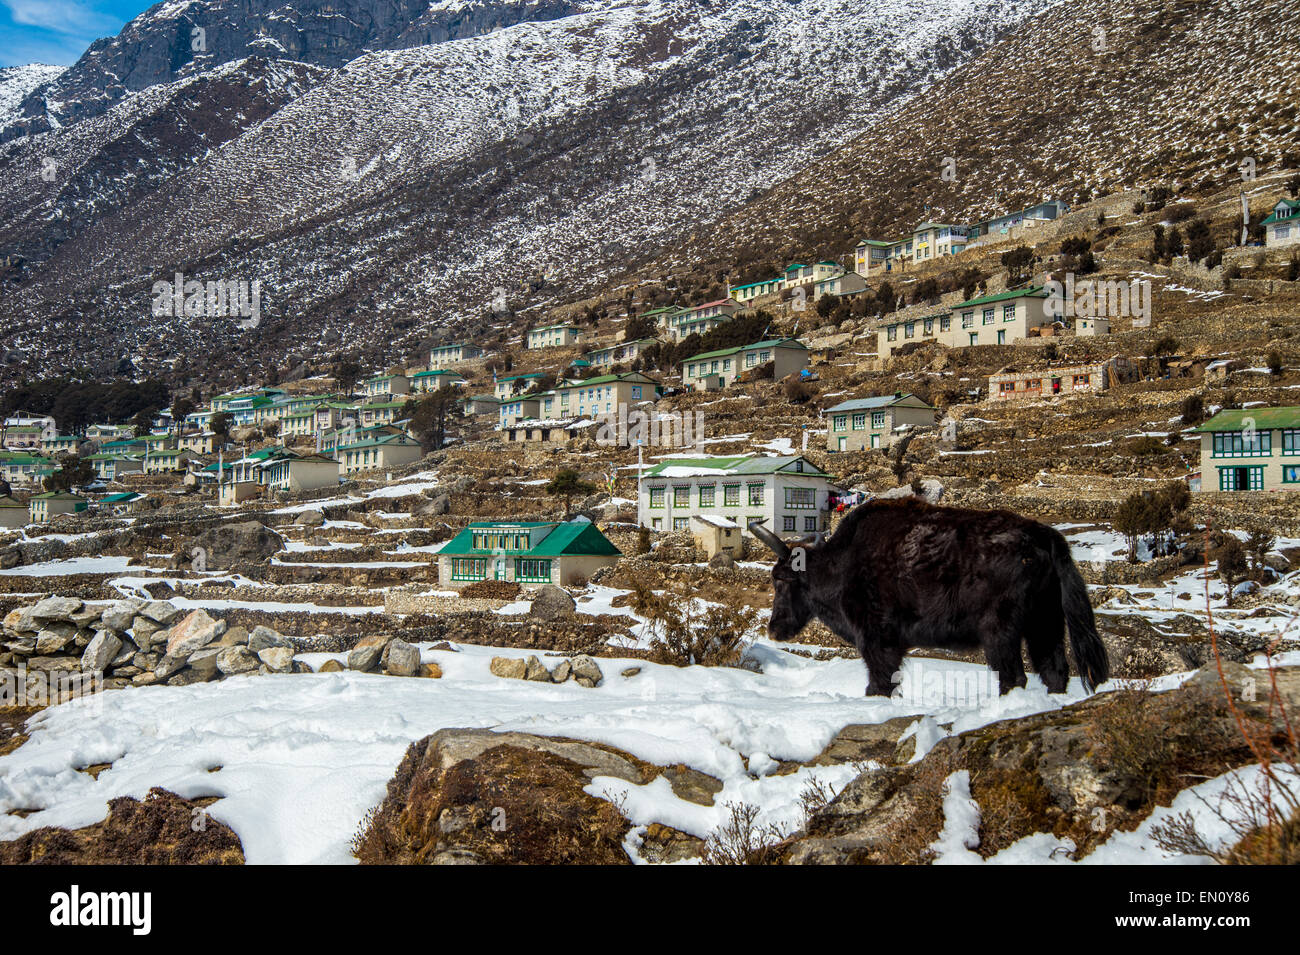 Khumjung village in Nepal with a yak in the foreground - Stock Image